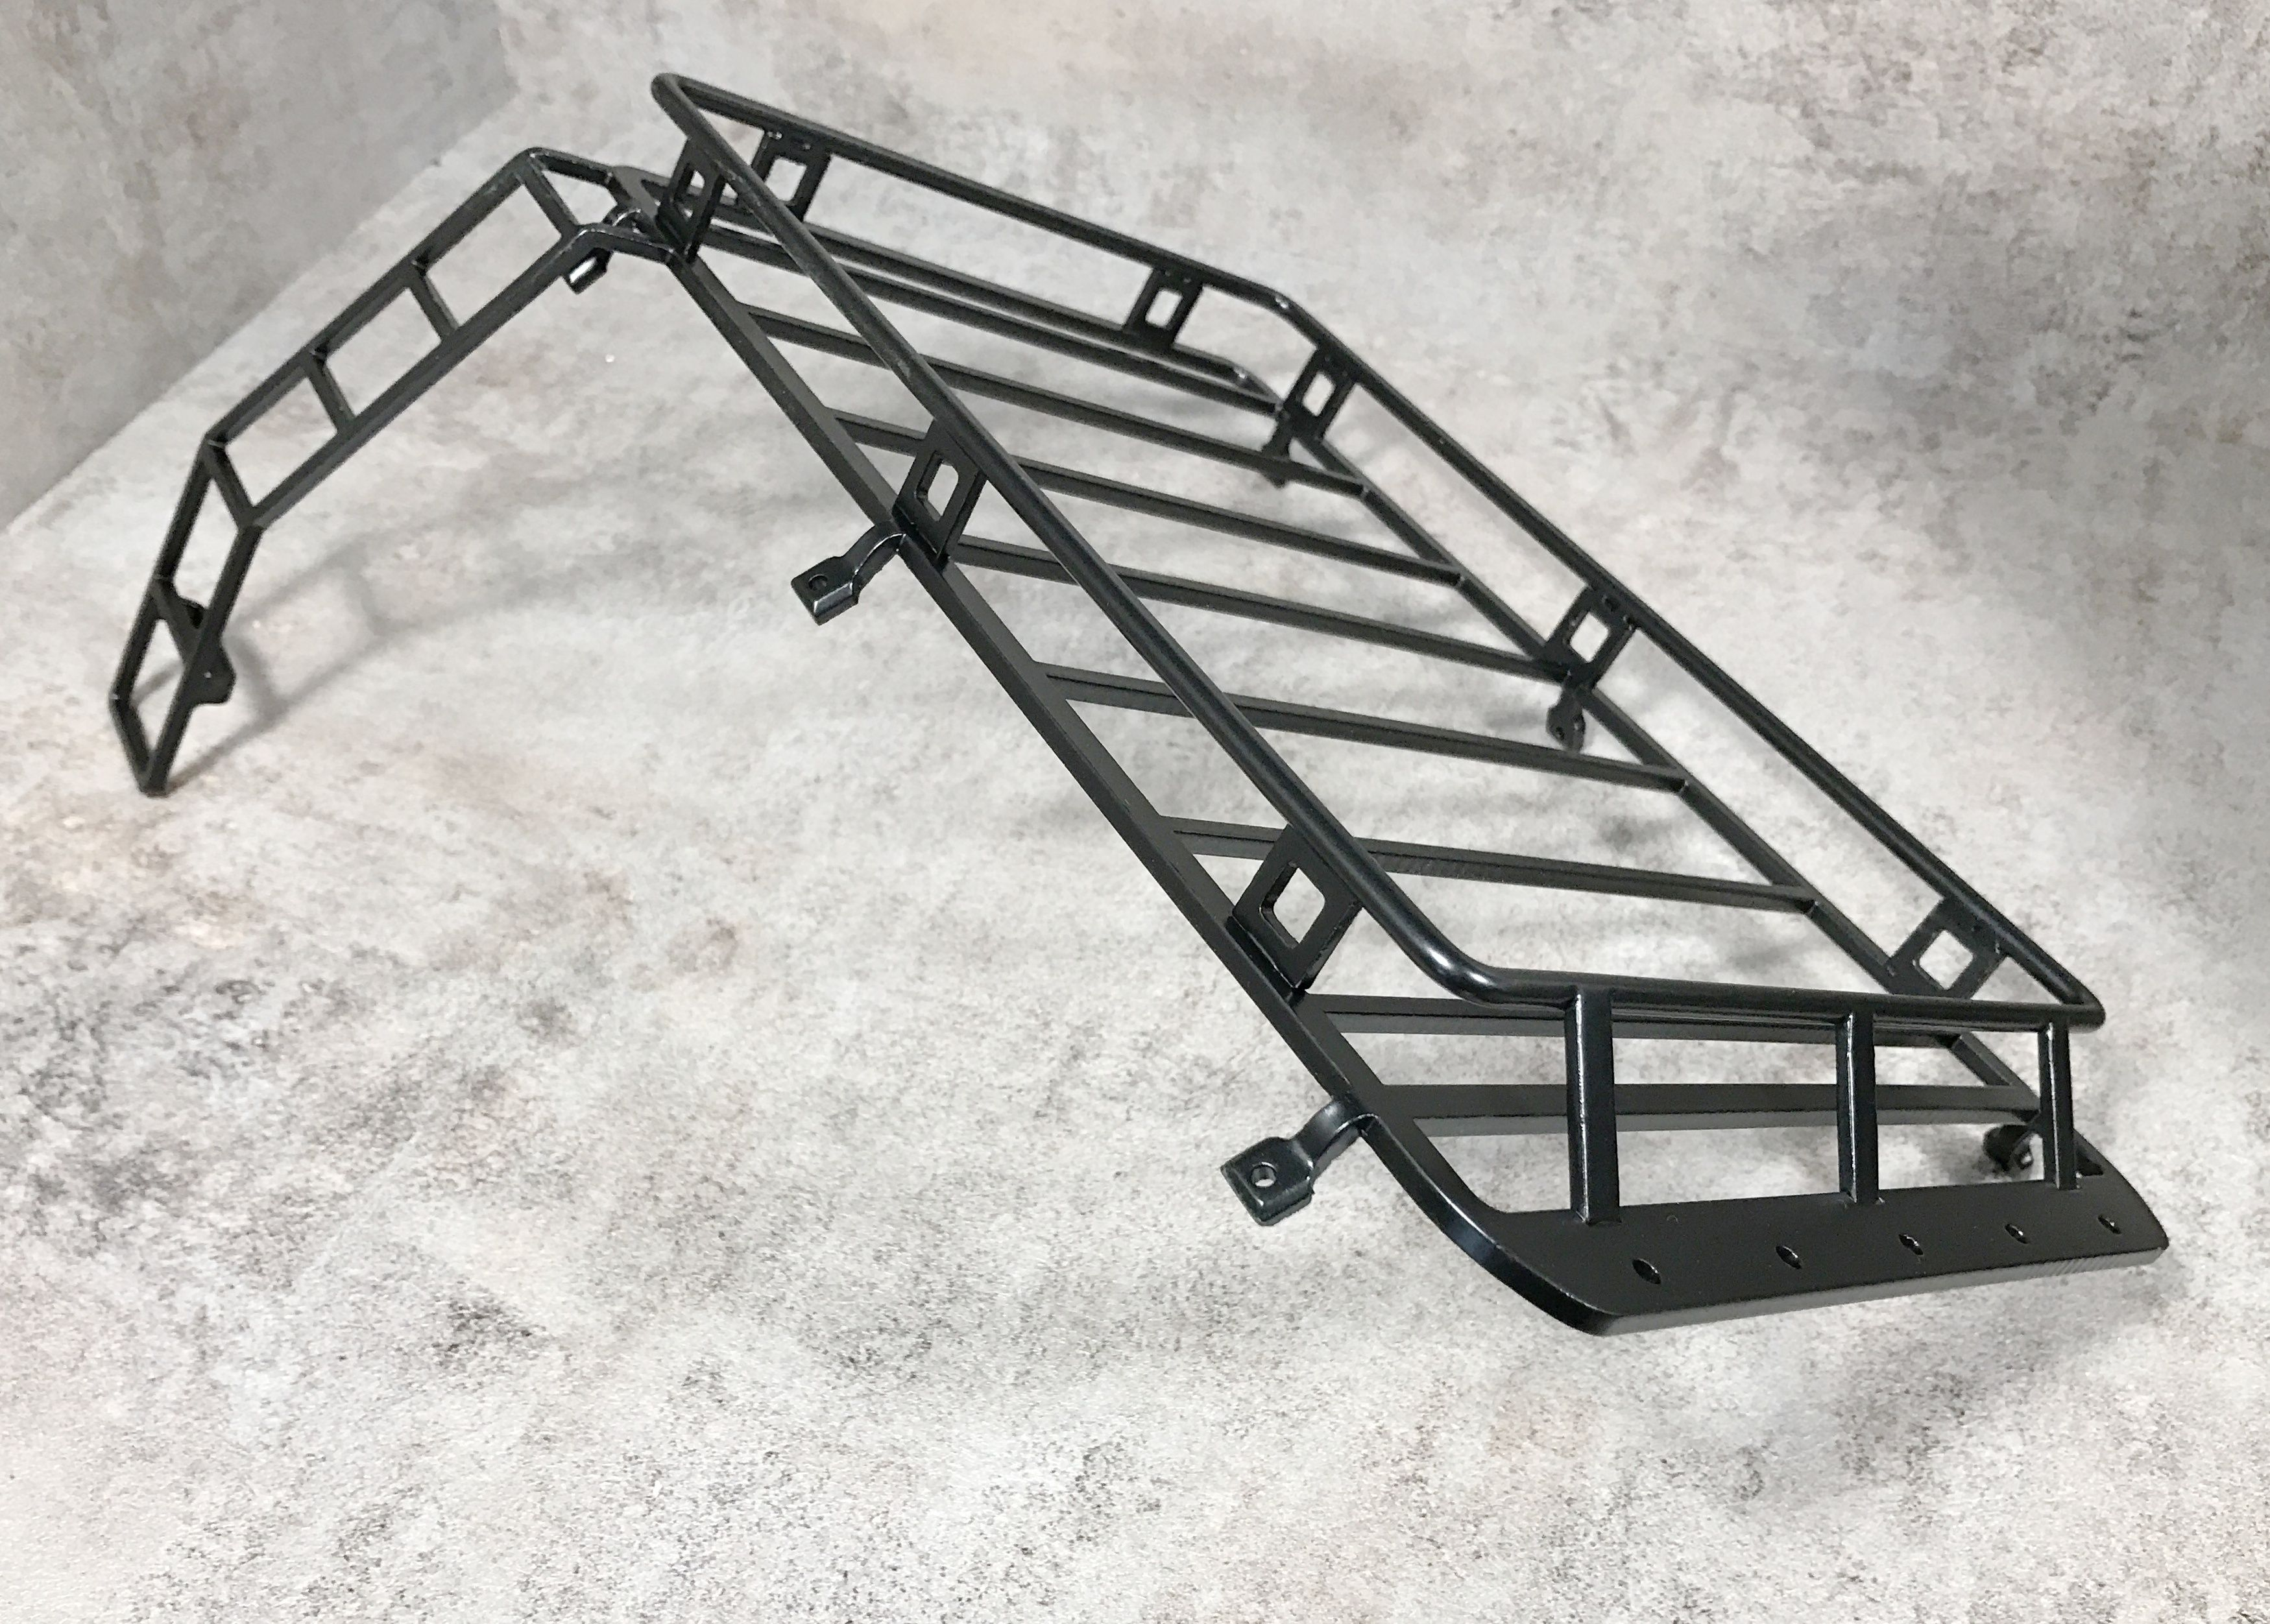 Expedition Ii Roof Rack Ladder For Jeep Xj Mex Jeep Xj Jeep